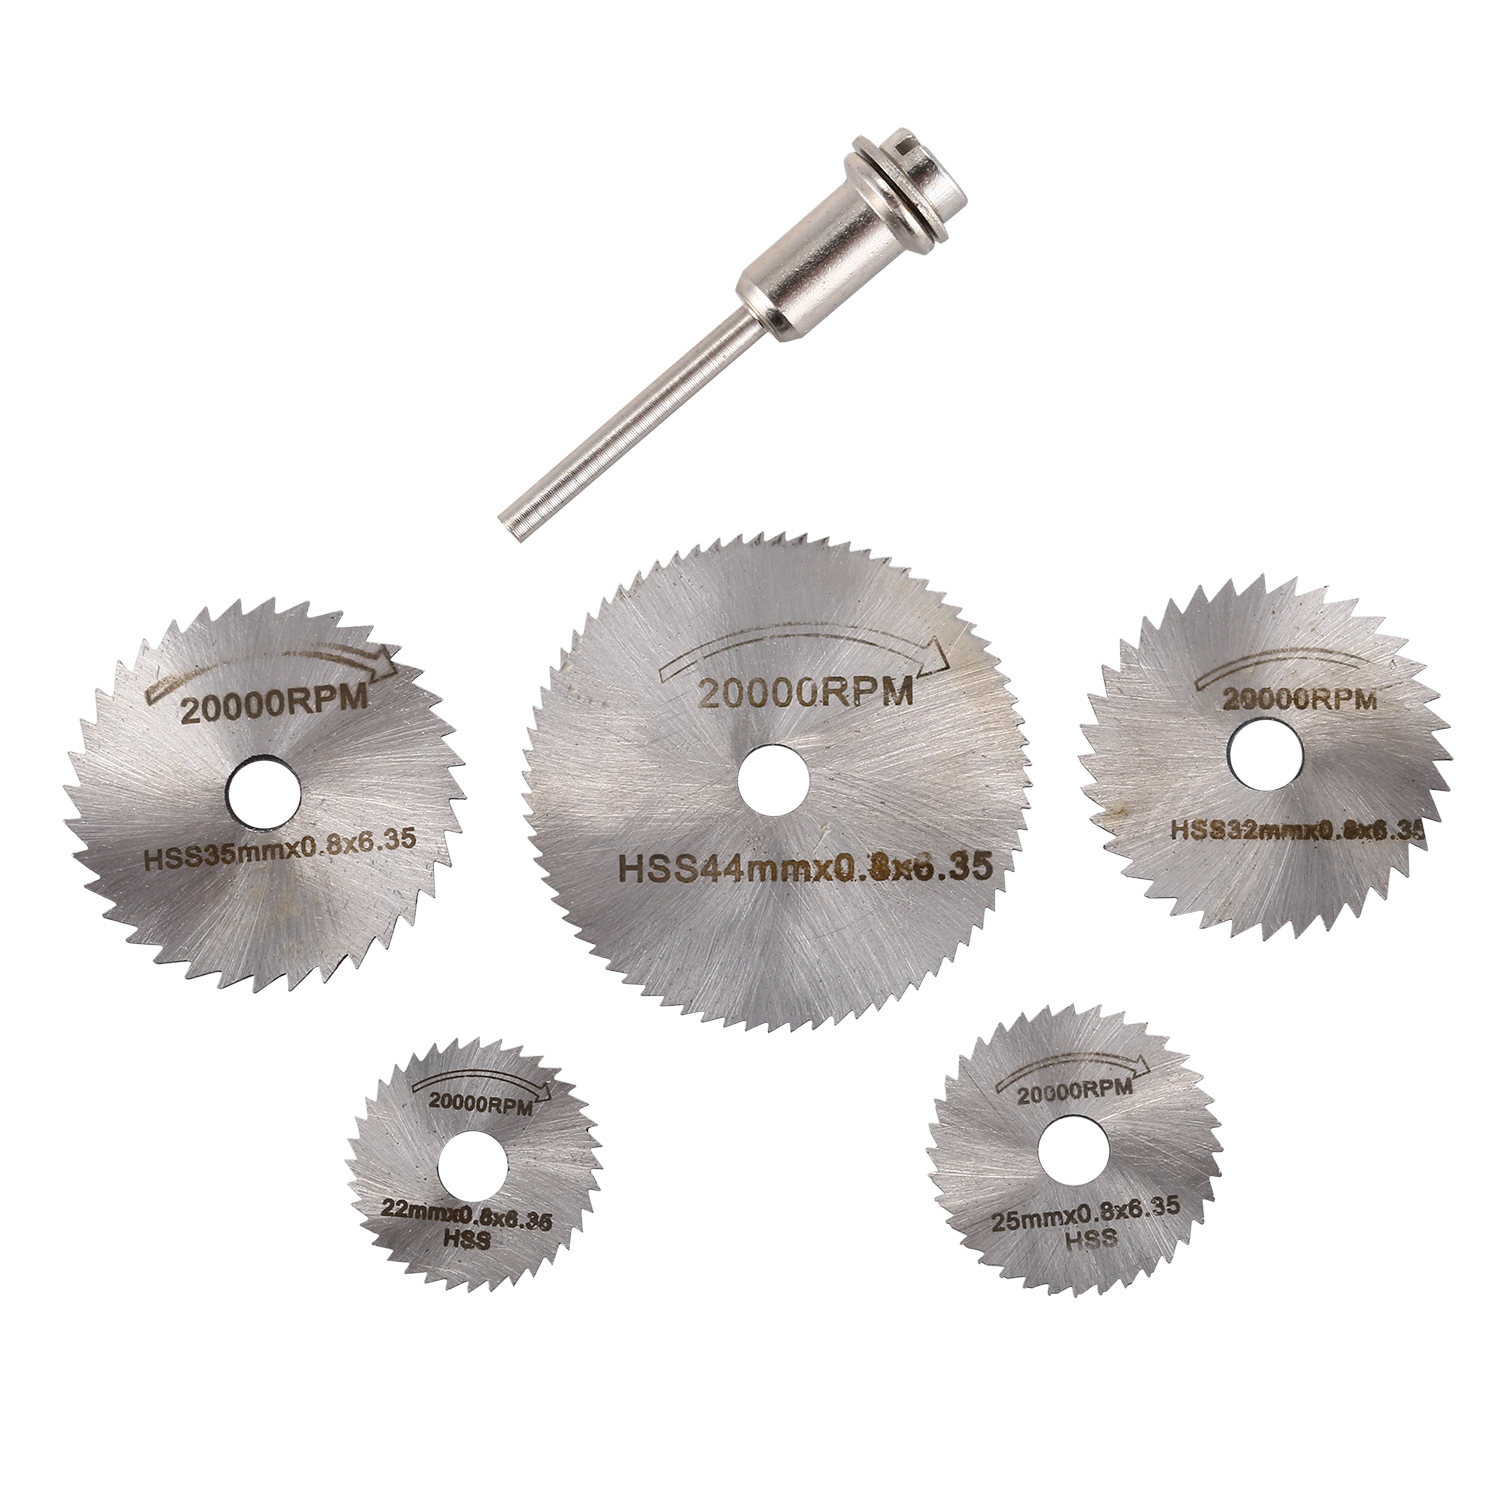 6pcs Mini Circular Saw Blade Set HSS Cutting Disc Rotary Drill Tool Accessories For Wood Plastic And Aluminum